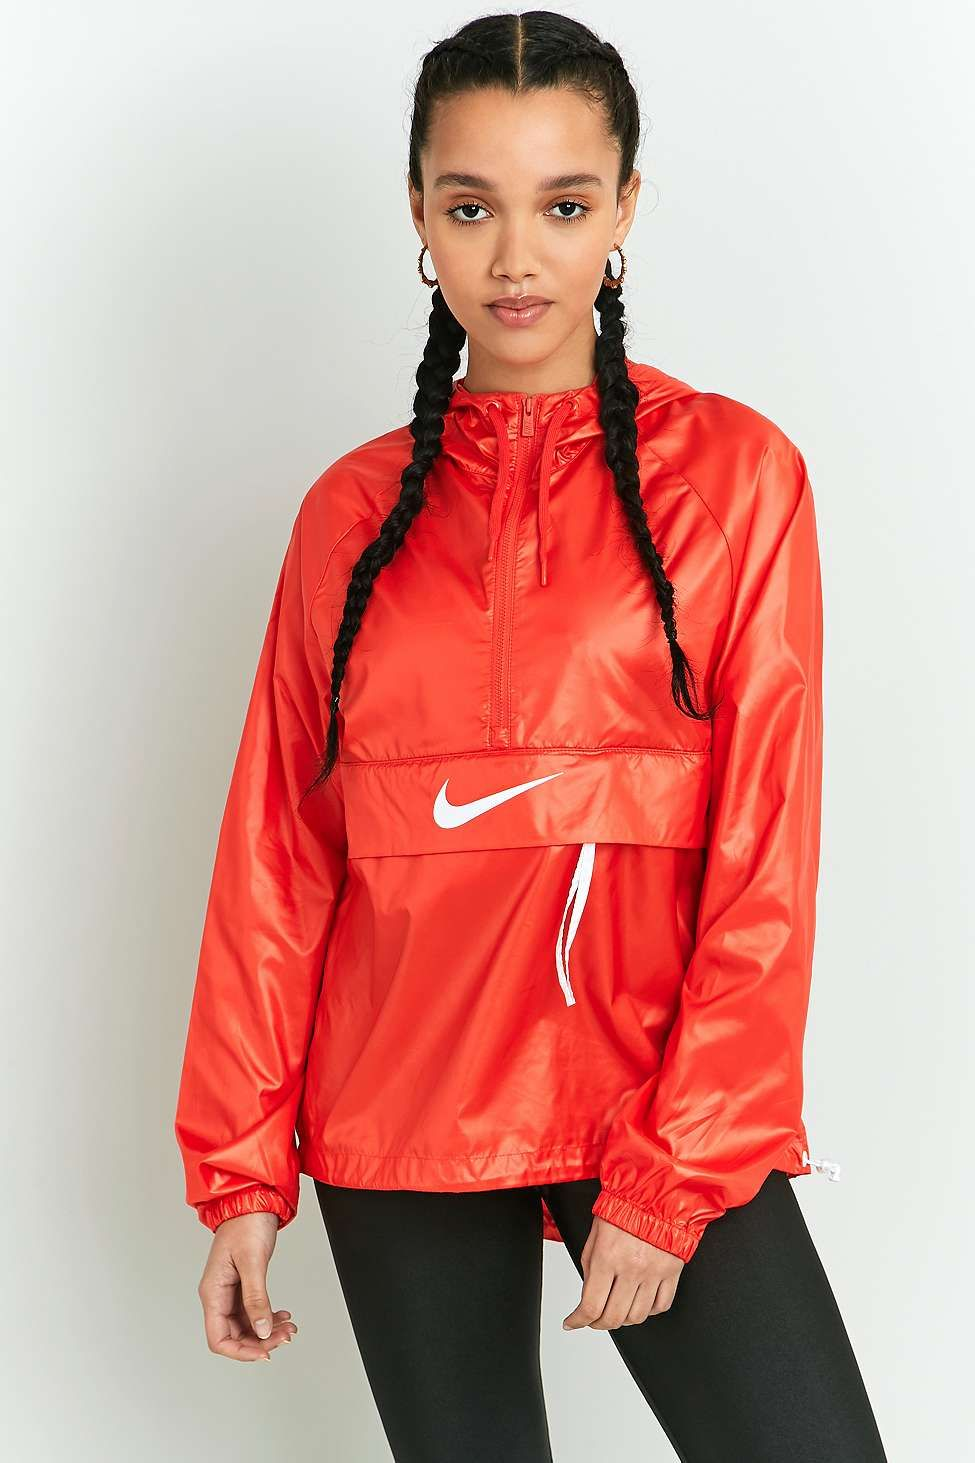 7f0e55860 Nike Swoosh Red Half-Zip Windbreaker | Jacket insperation | Half zip ...